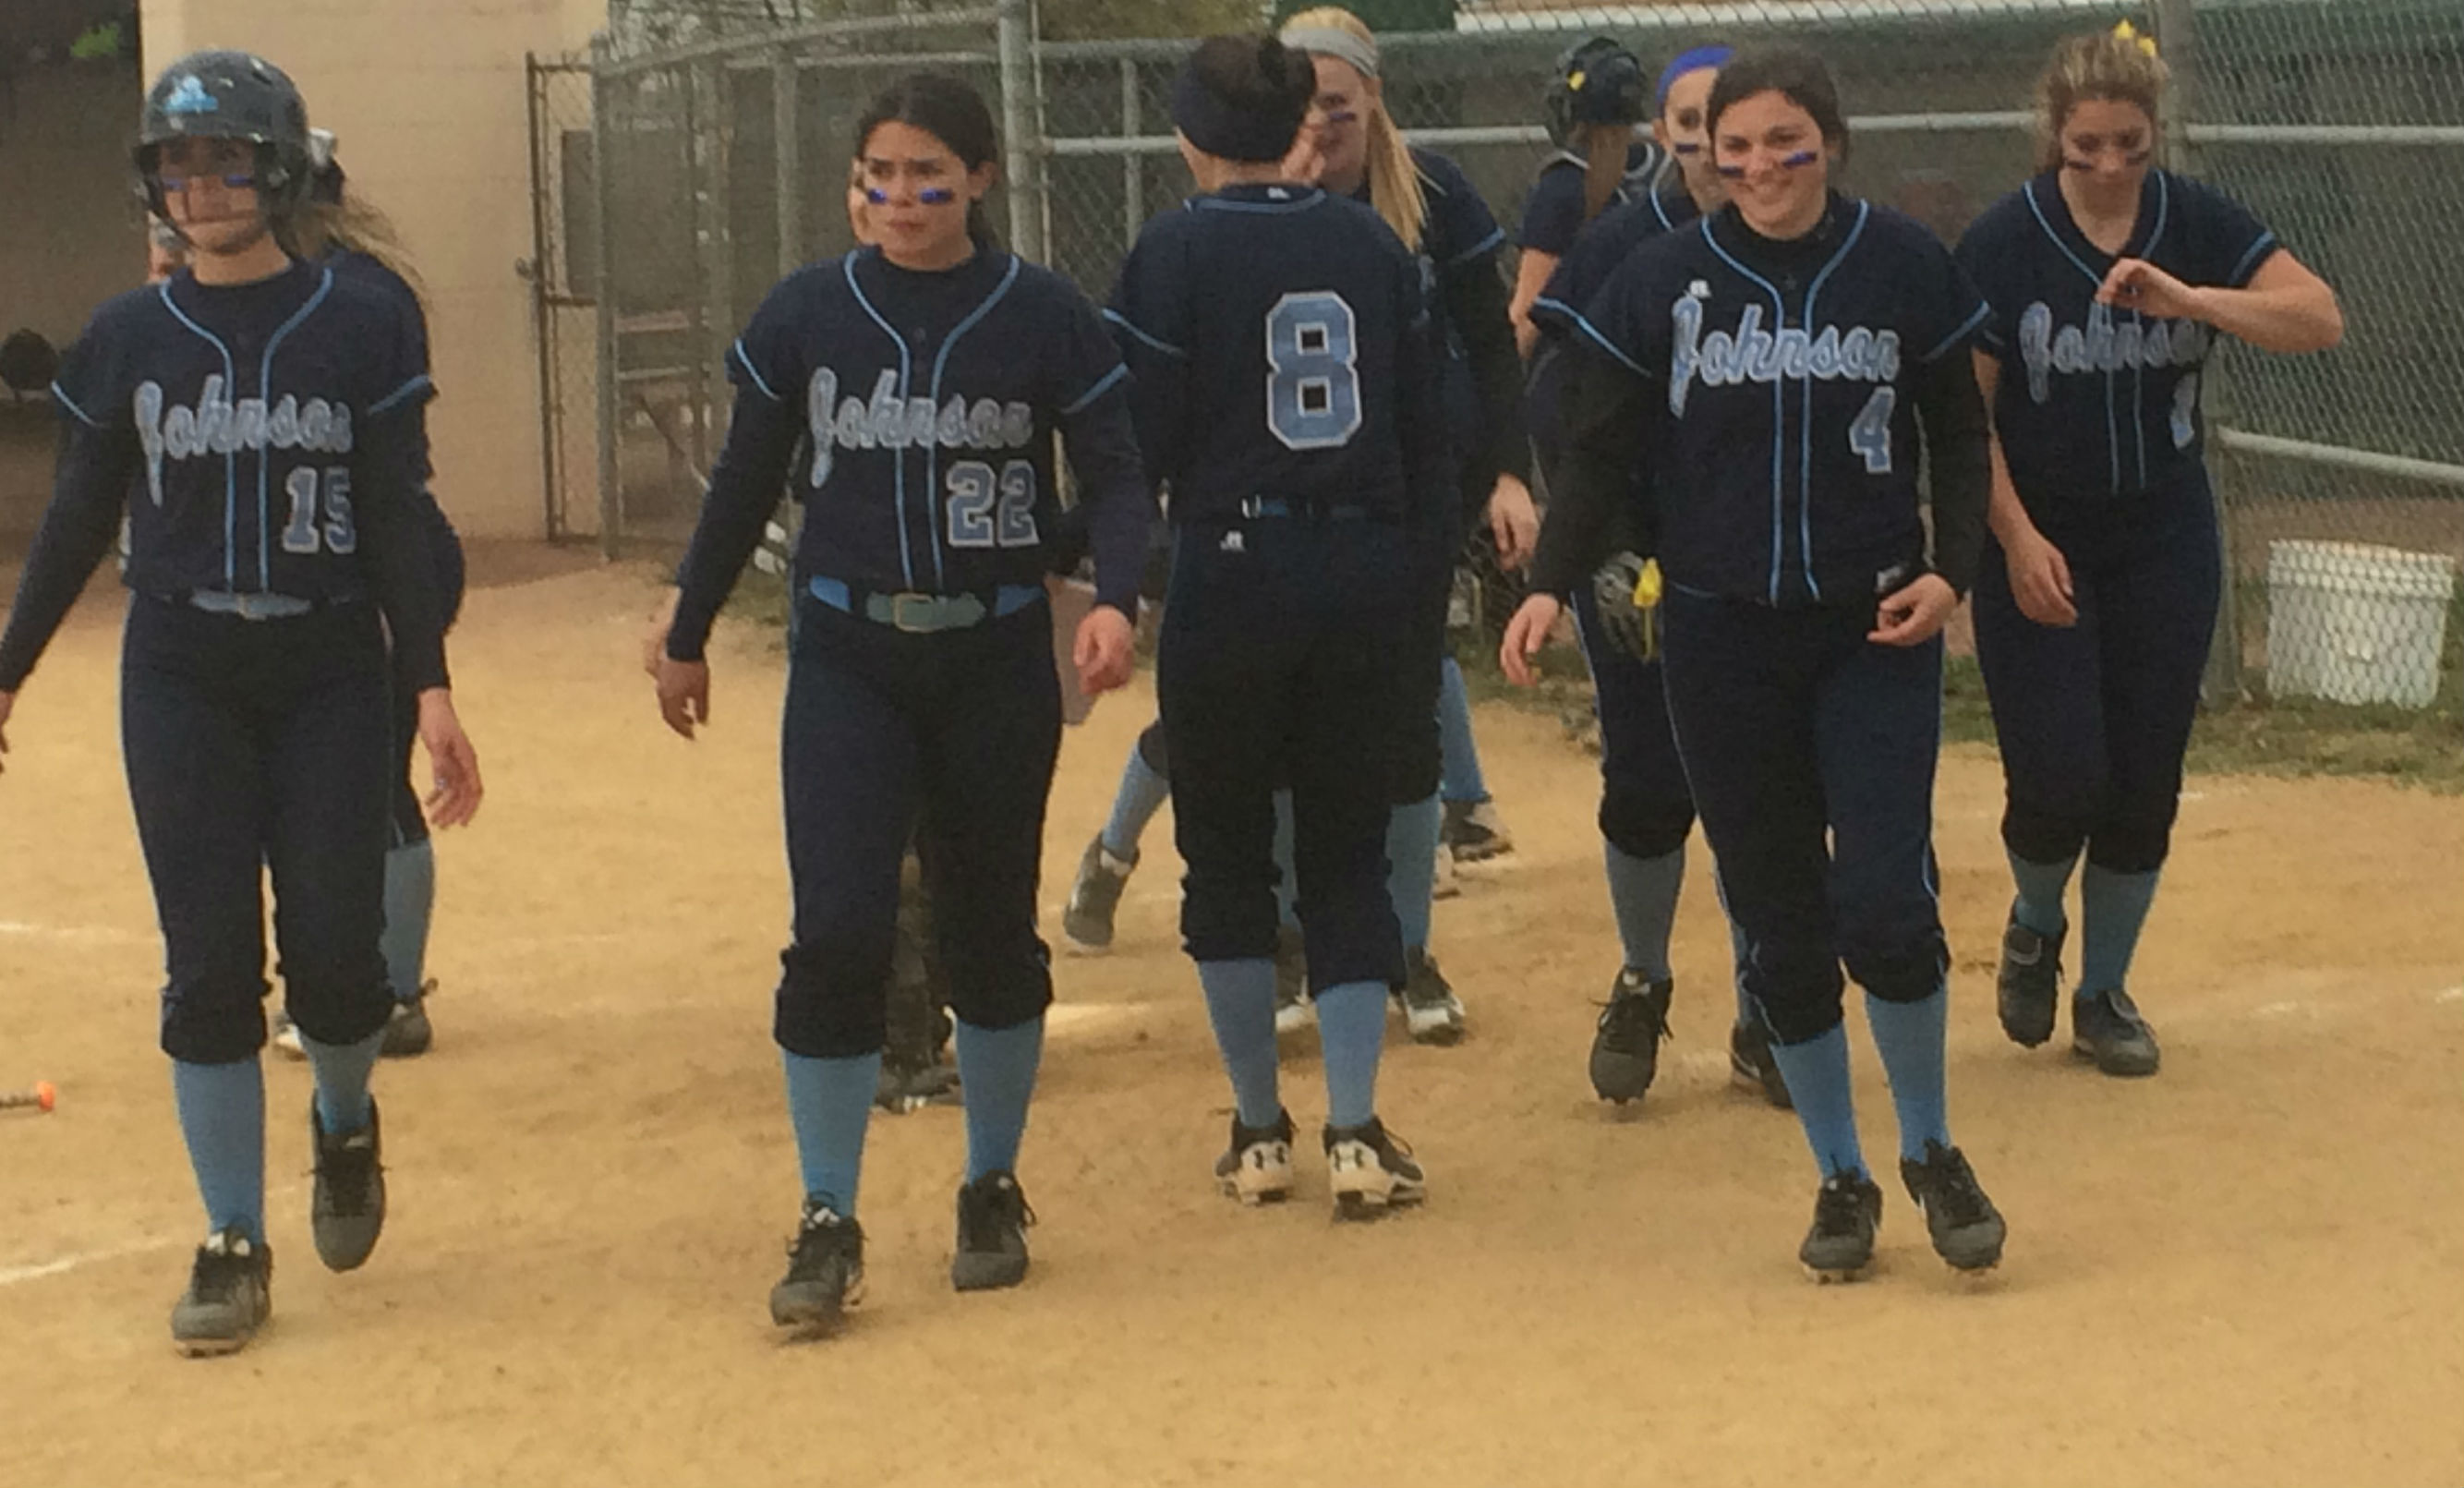 6a26ff1e5cffea7e55ec_ALJ-Brearley_Softball_UCT_Quarterfinals_D.jpg